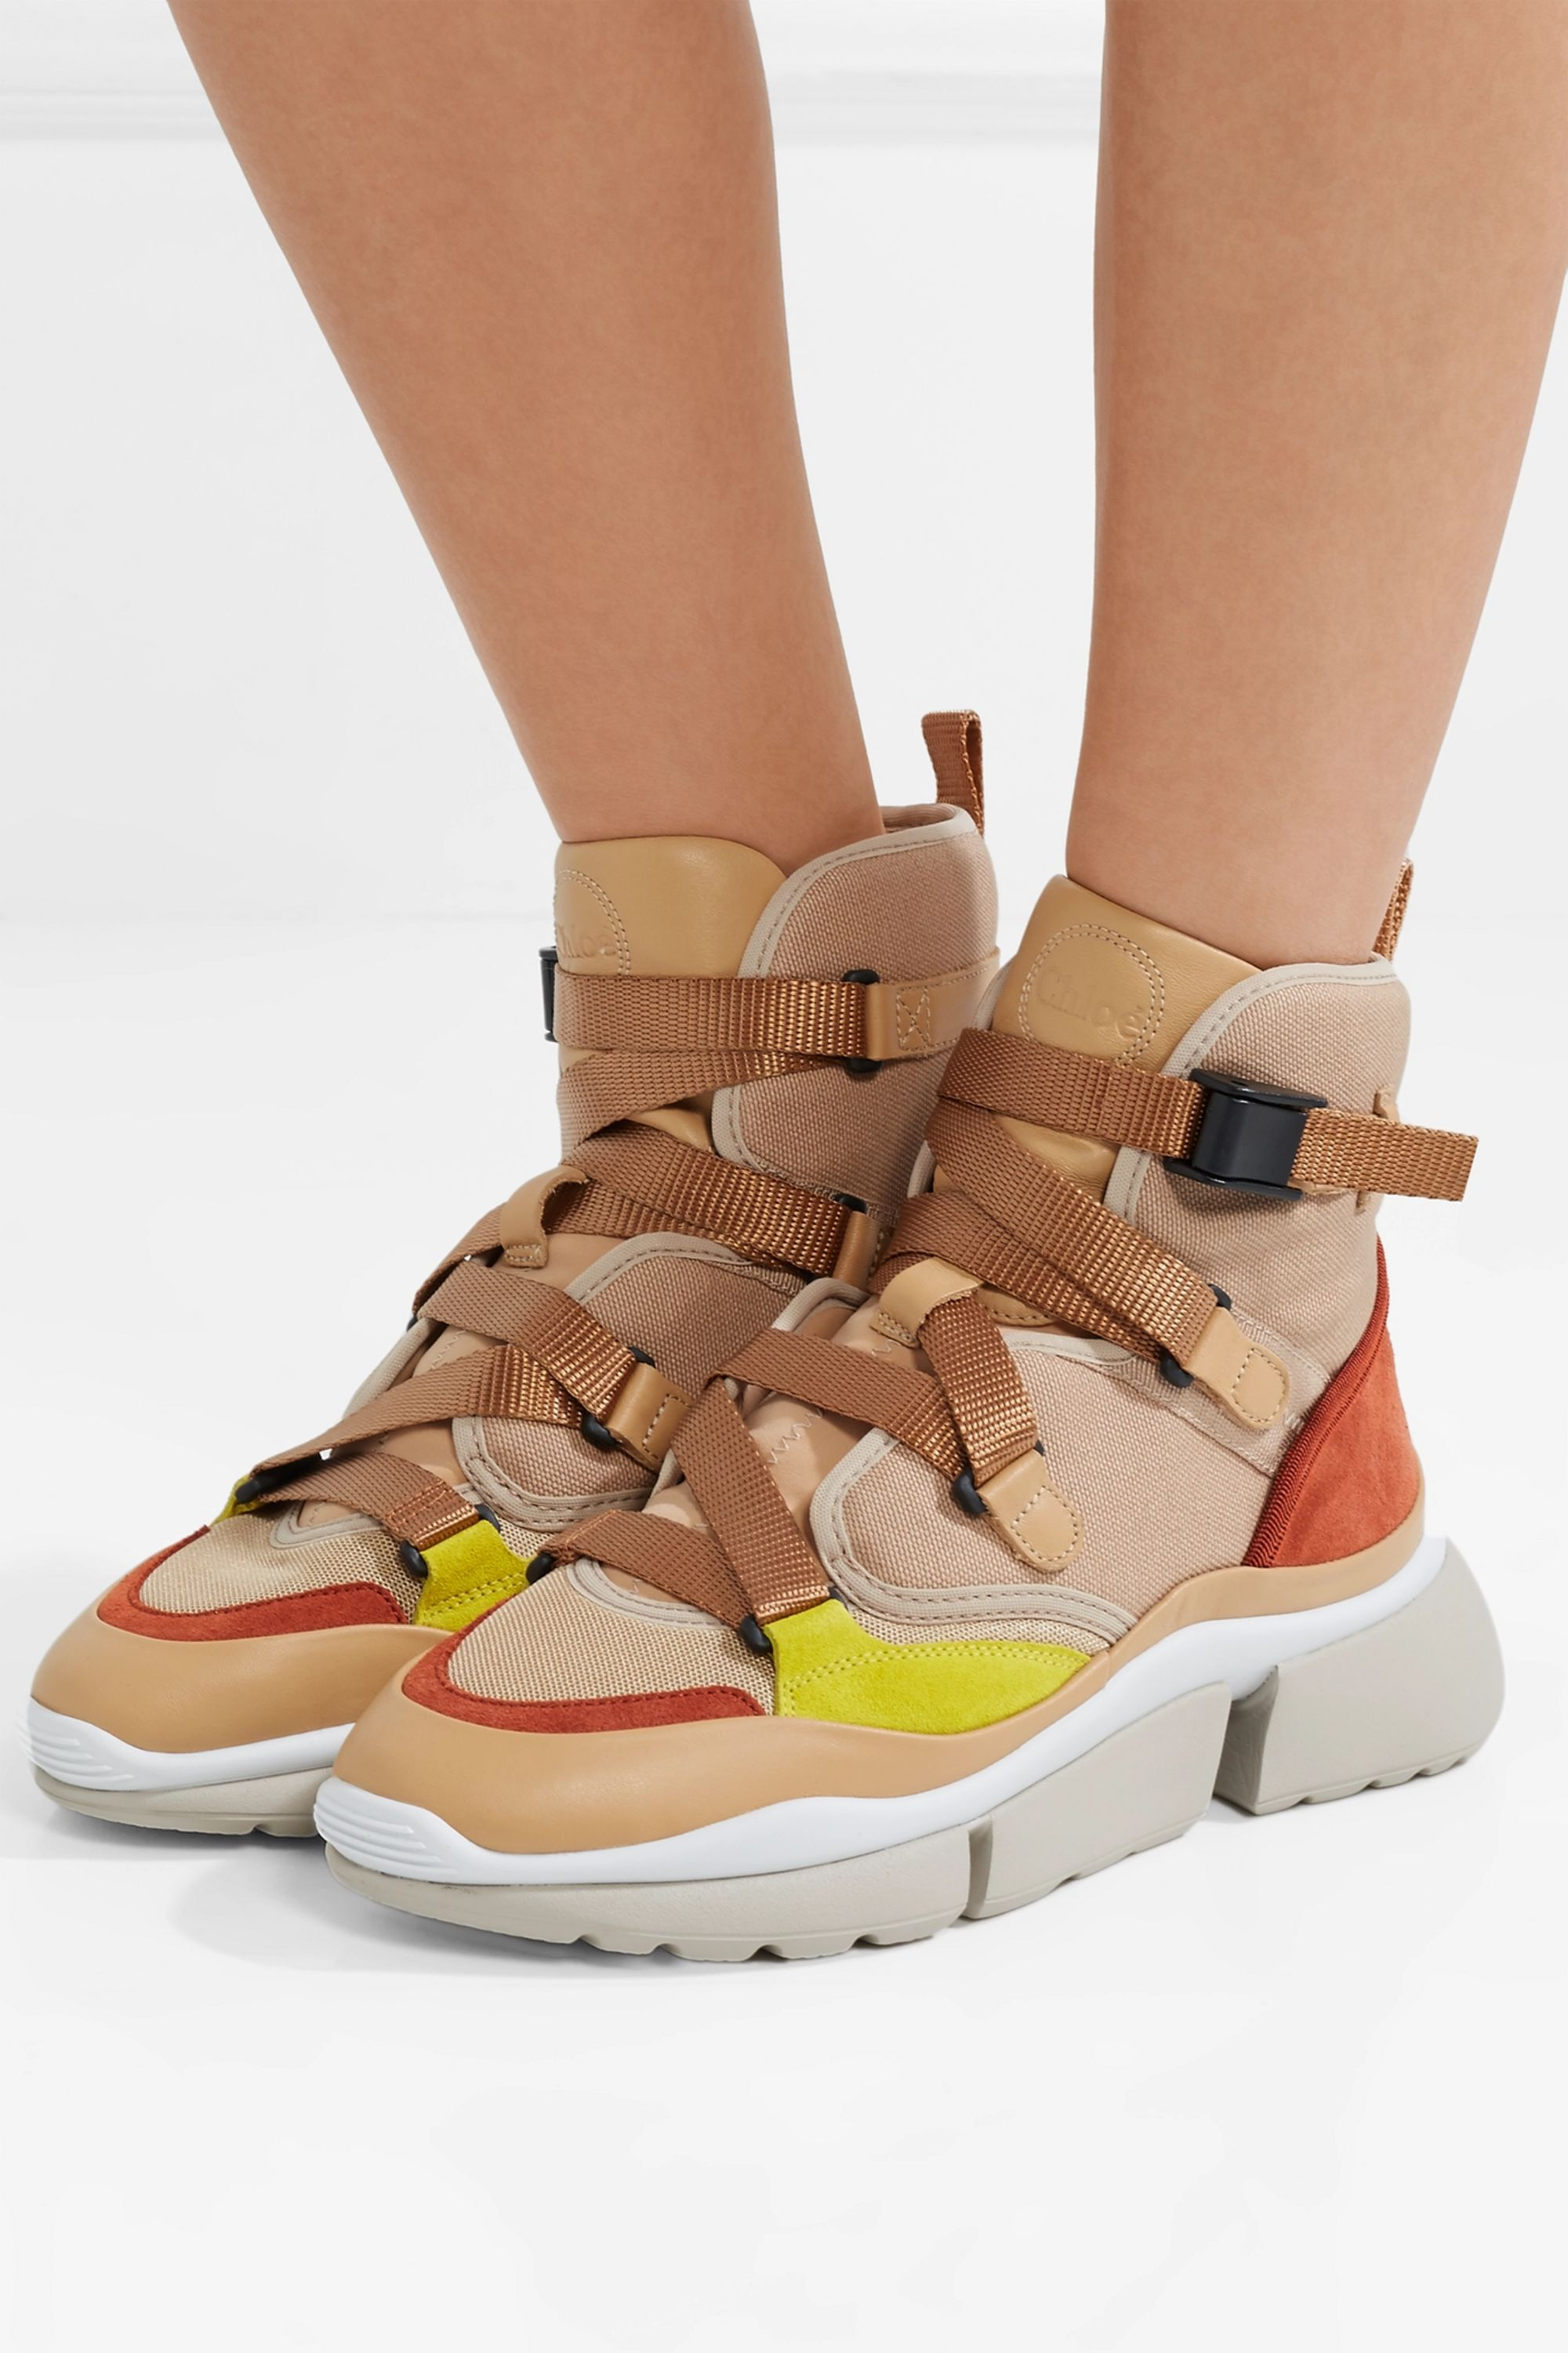 Chloé Sonnie canvas, mesh, suede and leather high-top sneakers